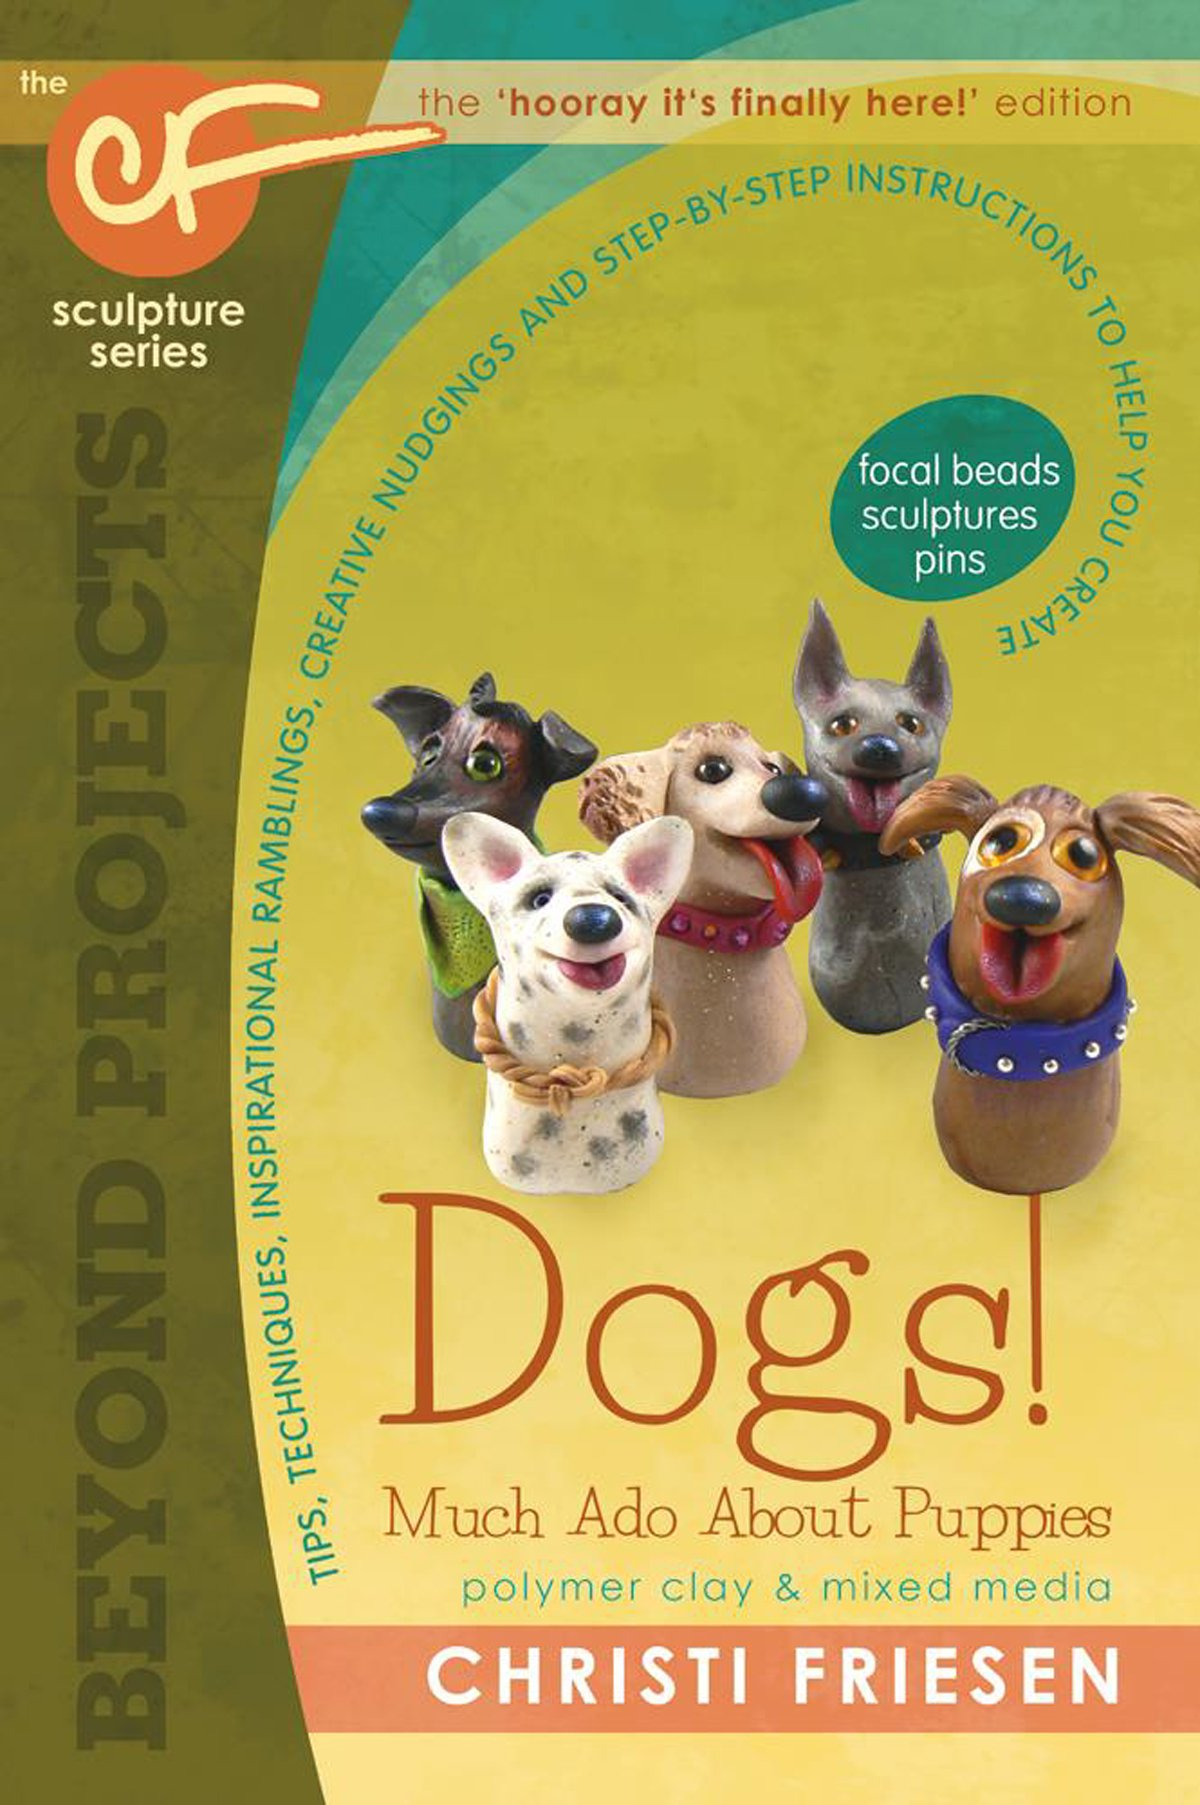 Download Dogs! Much Ado About Puppies: The CF Sculpture Series Book 8 (Beyond Projects) ebook